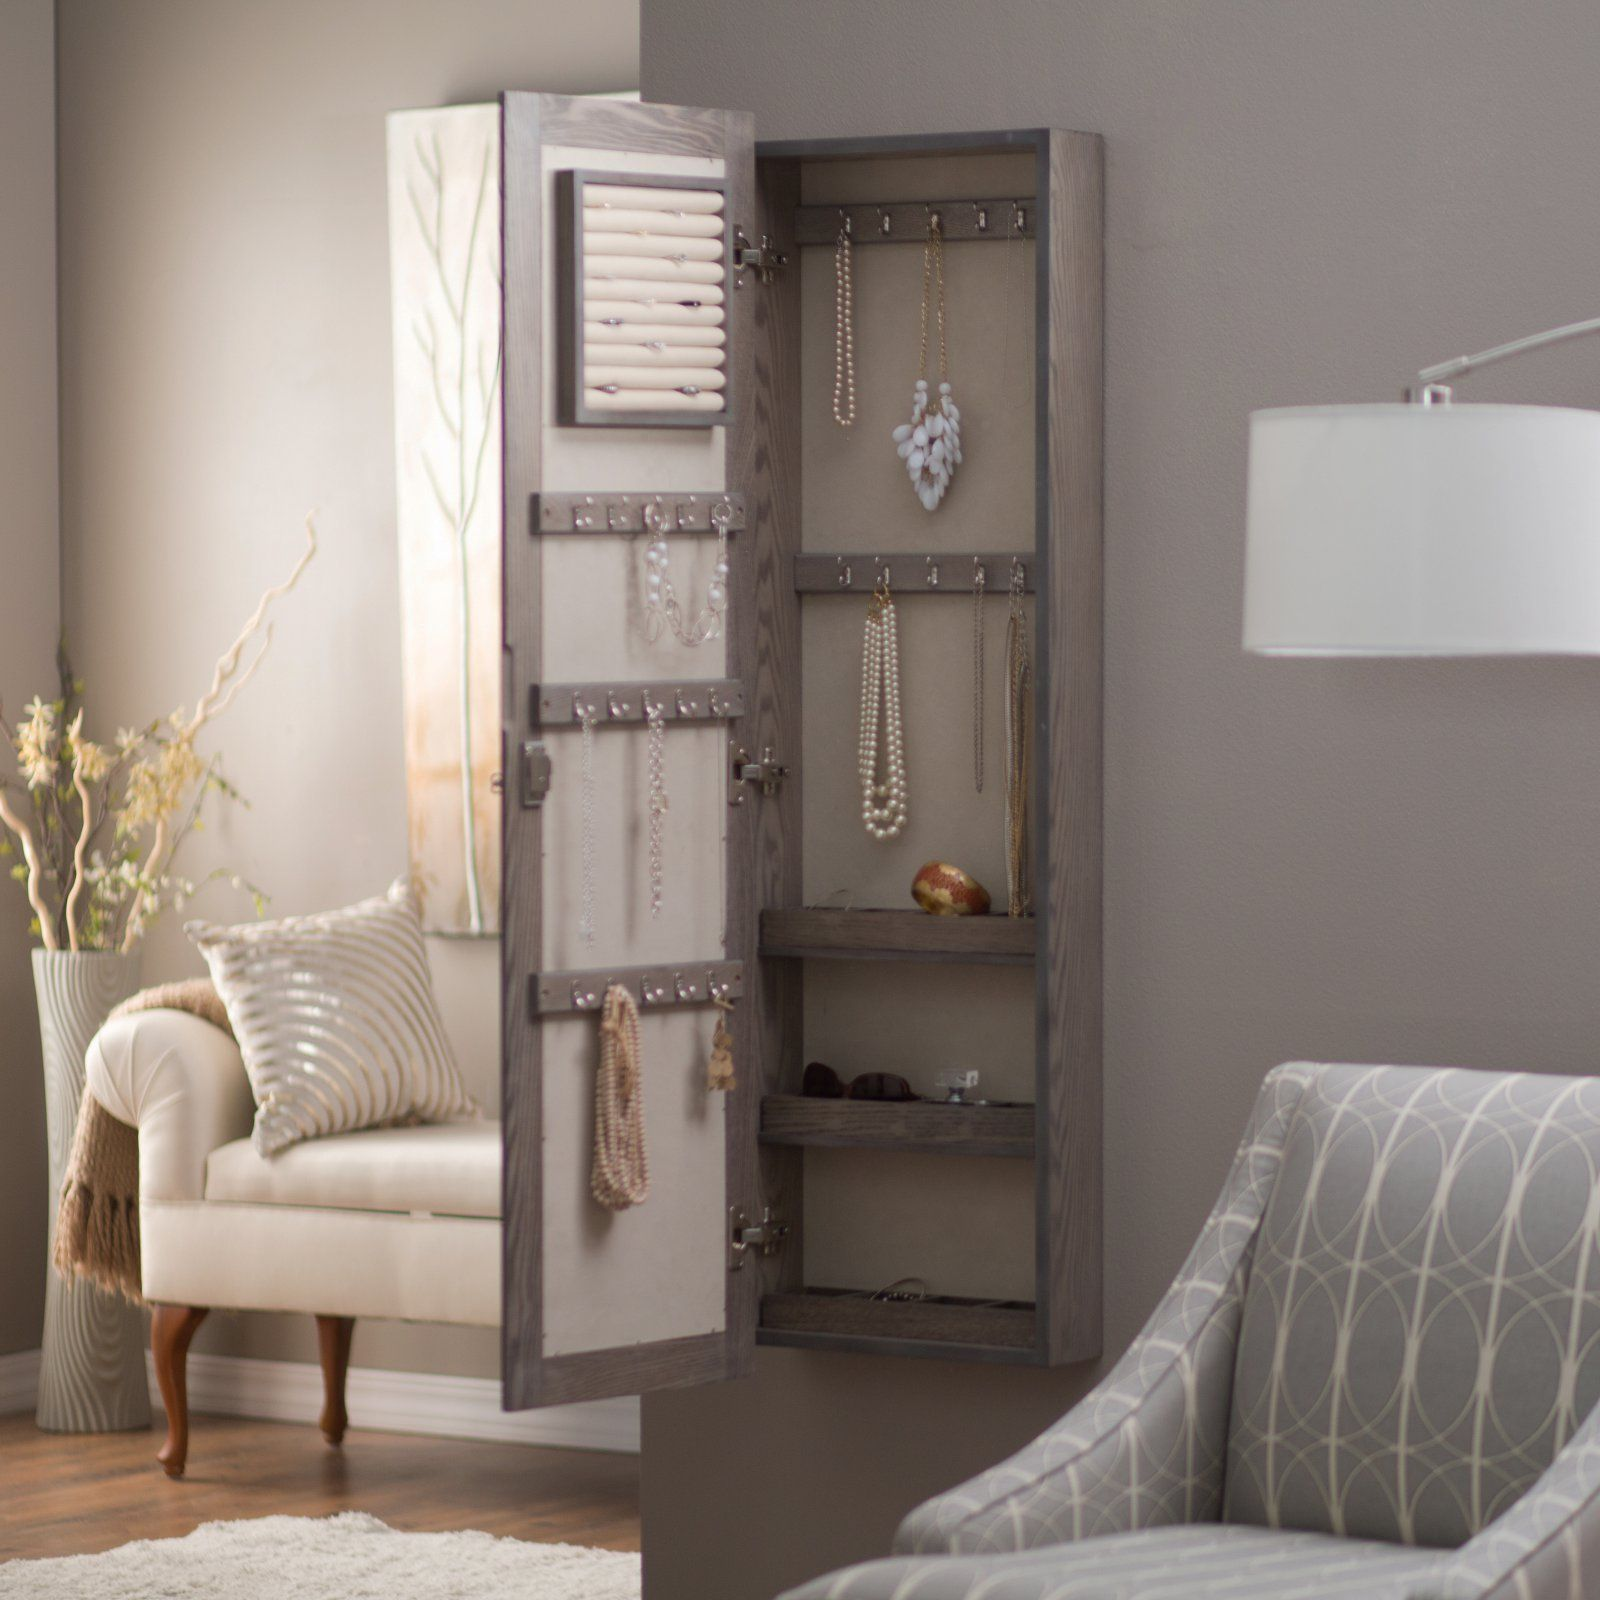 Wall Mounted Locking Mirrored Jewelry Armoire Driftwood Walmart Com In 2021 Wall Mounted Jewelry Armoire Jewelry Mirror Jewelry Armoire Wall mount mirror jewelry armoire